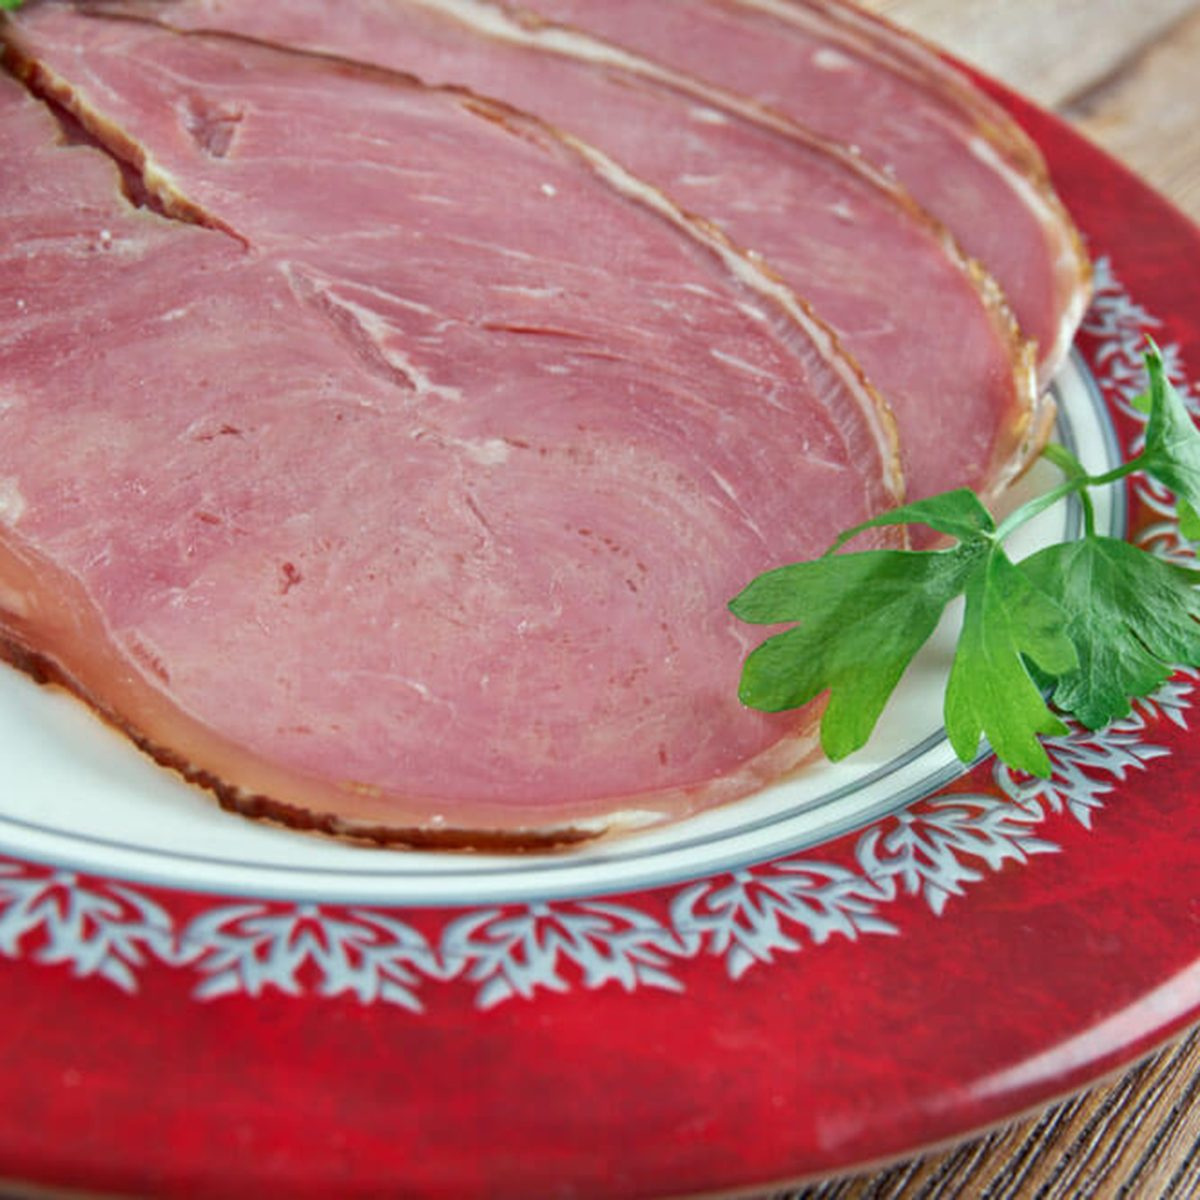 Hangikjot - hung meat. traditional festive food in Iceland, served at Christmas